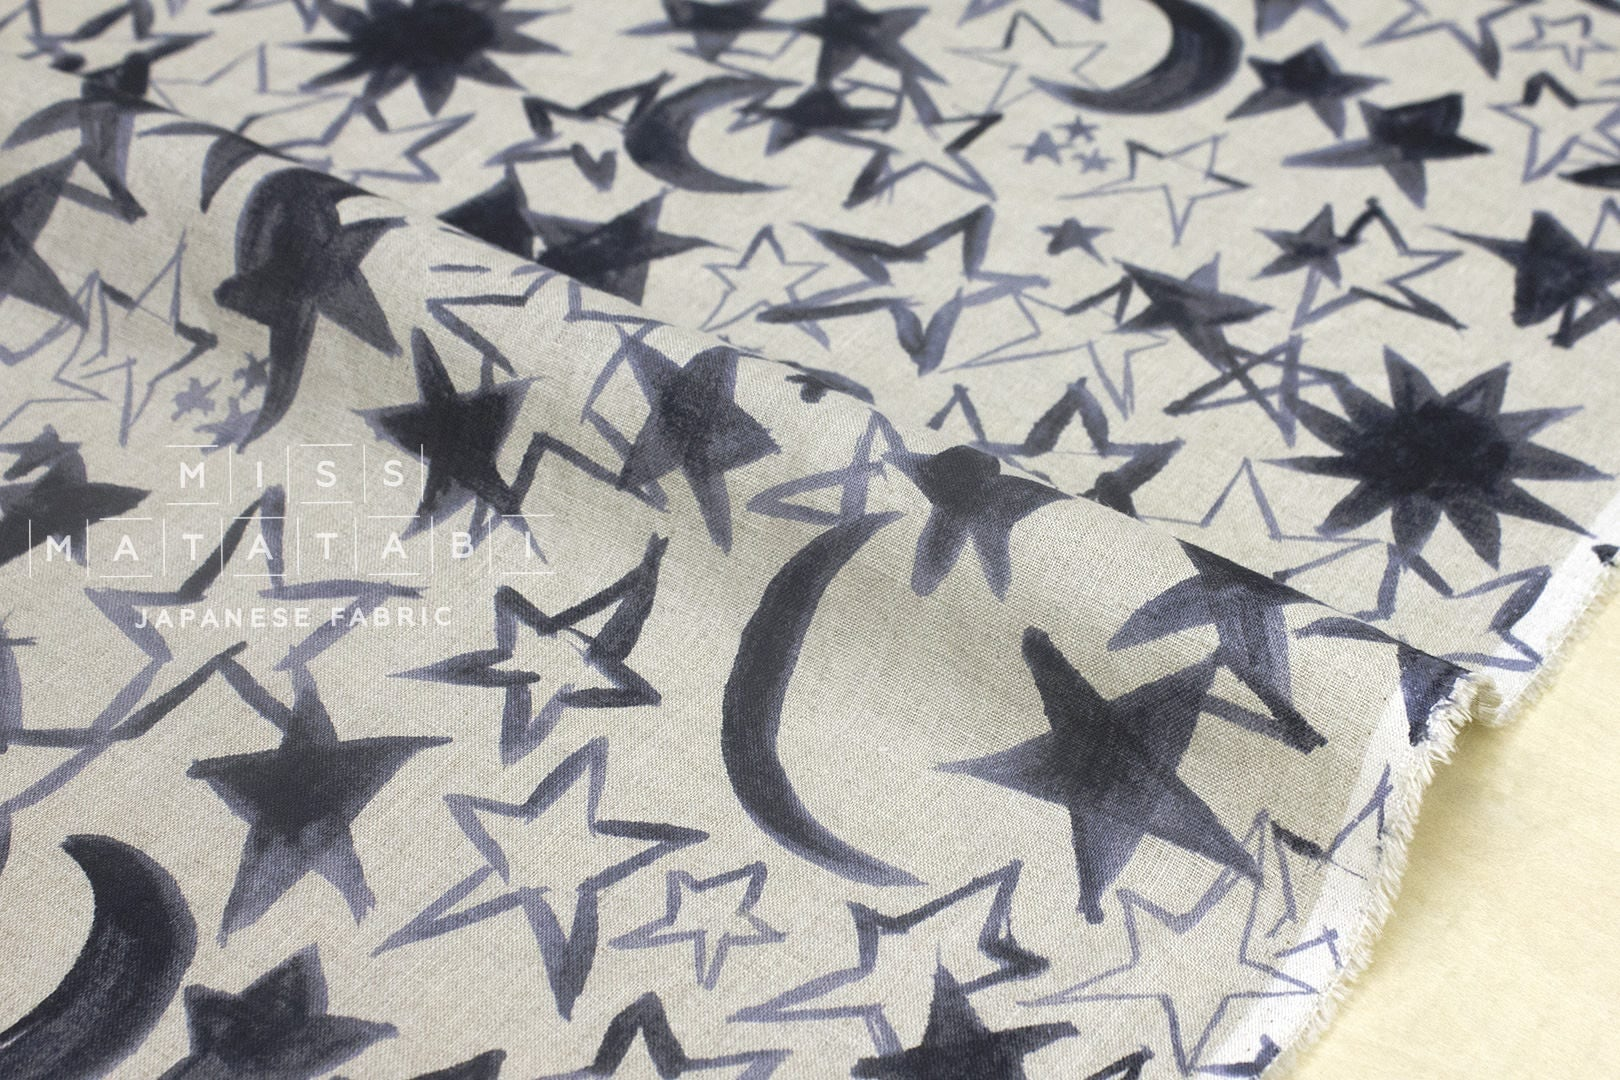 Japanese fabric 100 linen moon and stars black grey for Moon and stars fabric